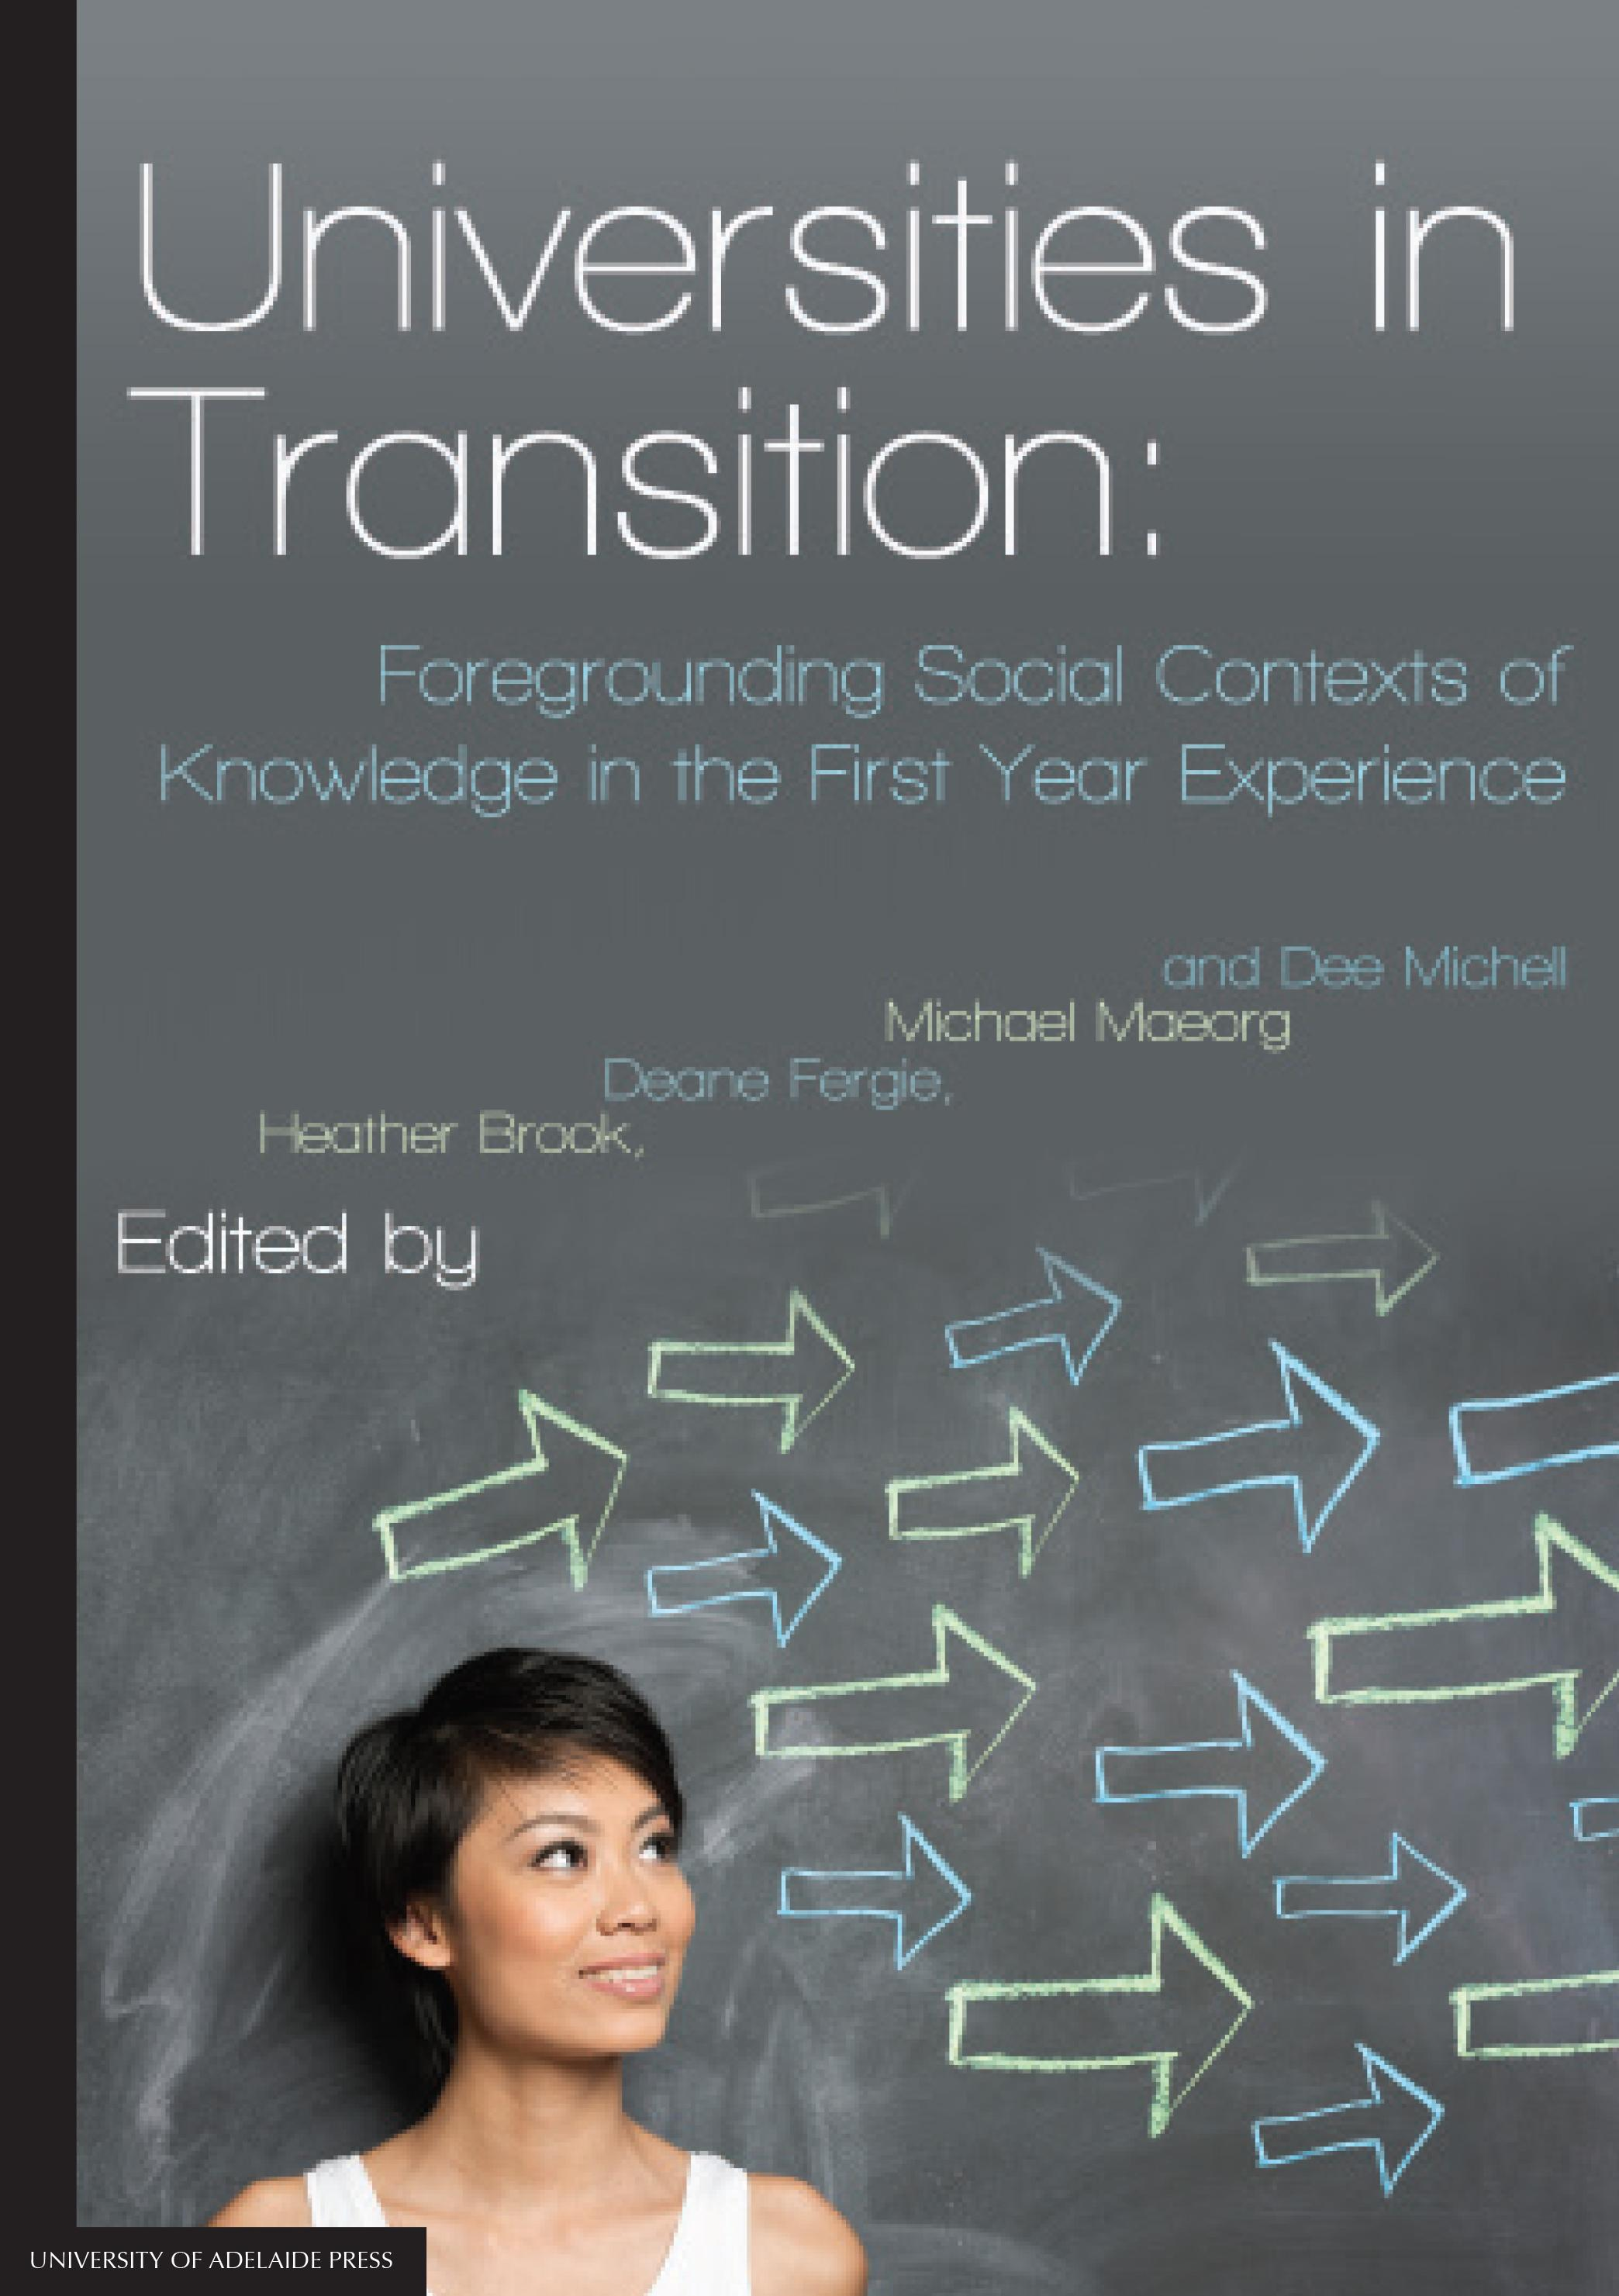 Universities in transition cover